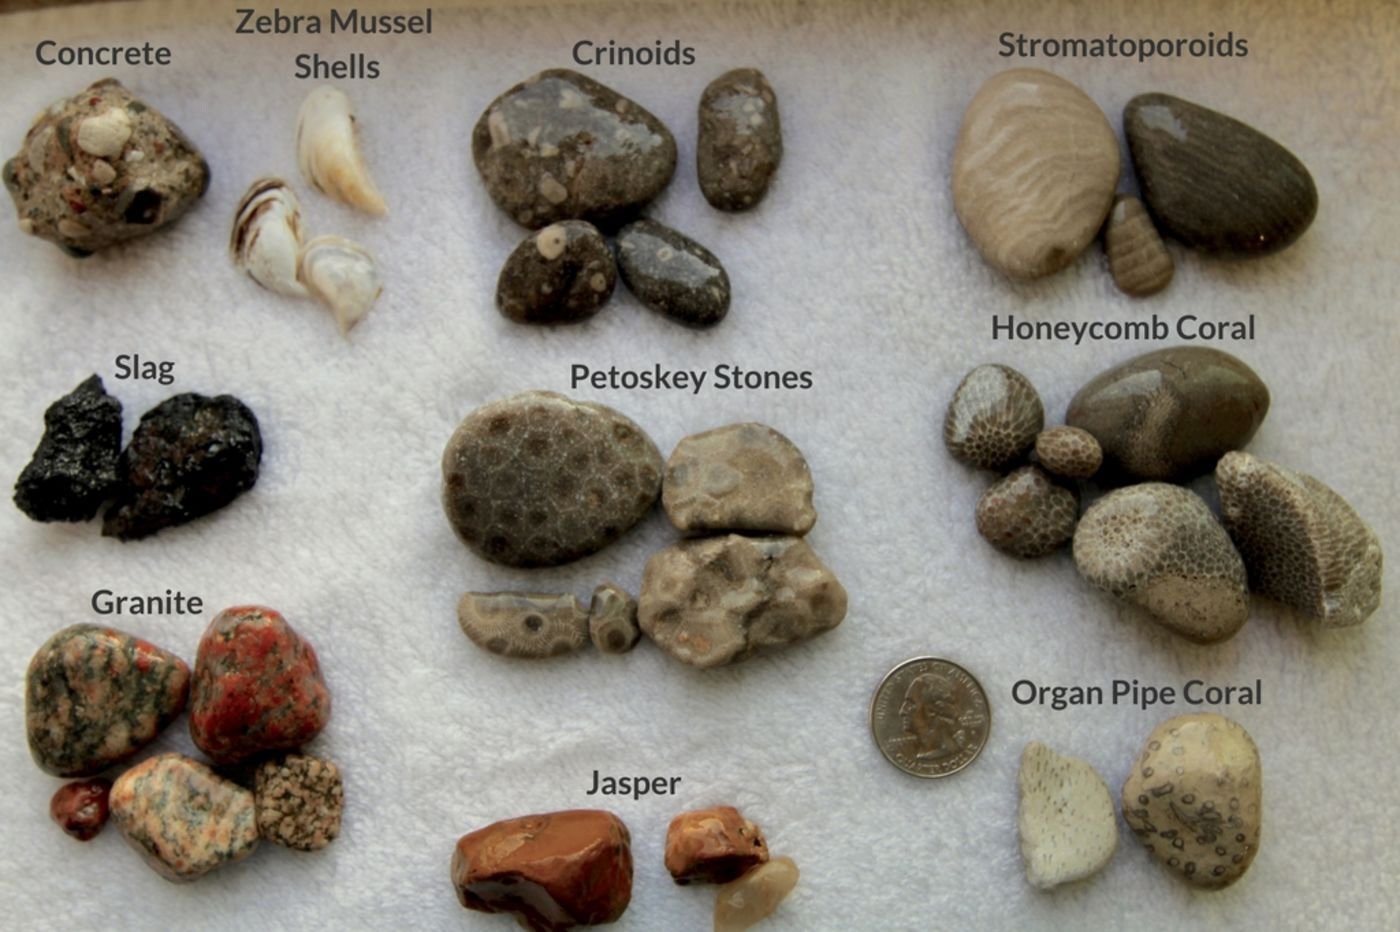 Beachgoer S Guide To Lake Michigan Fossils And Rocks Lake Michigan Michigan Fossils